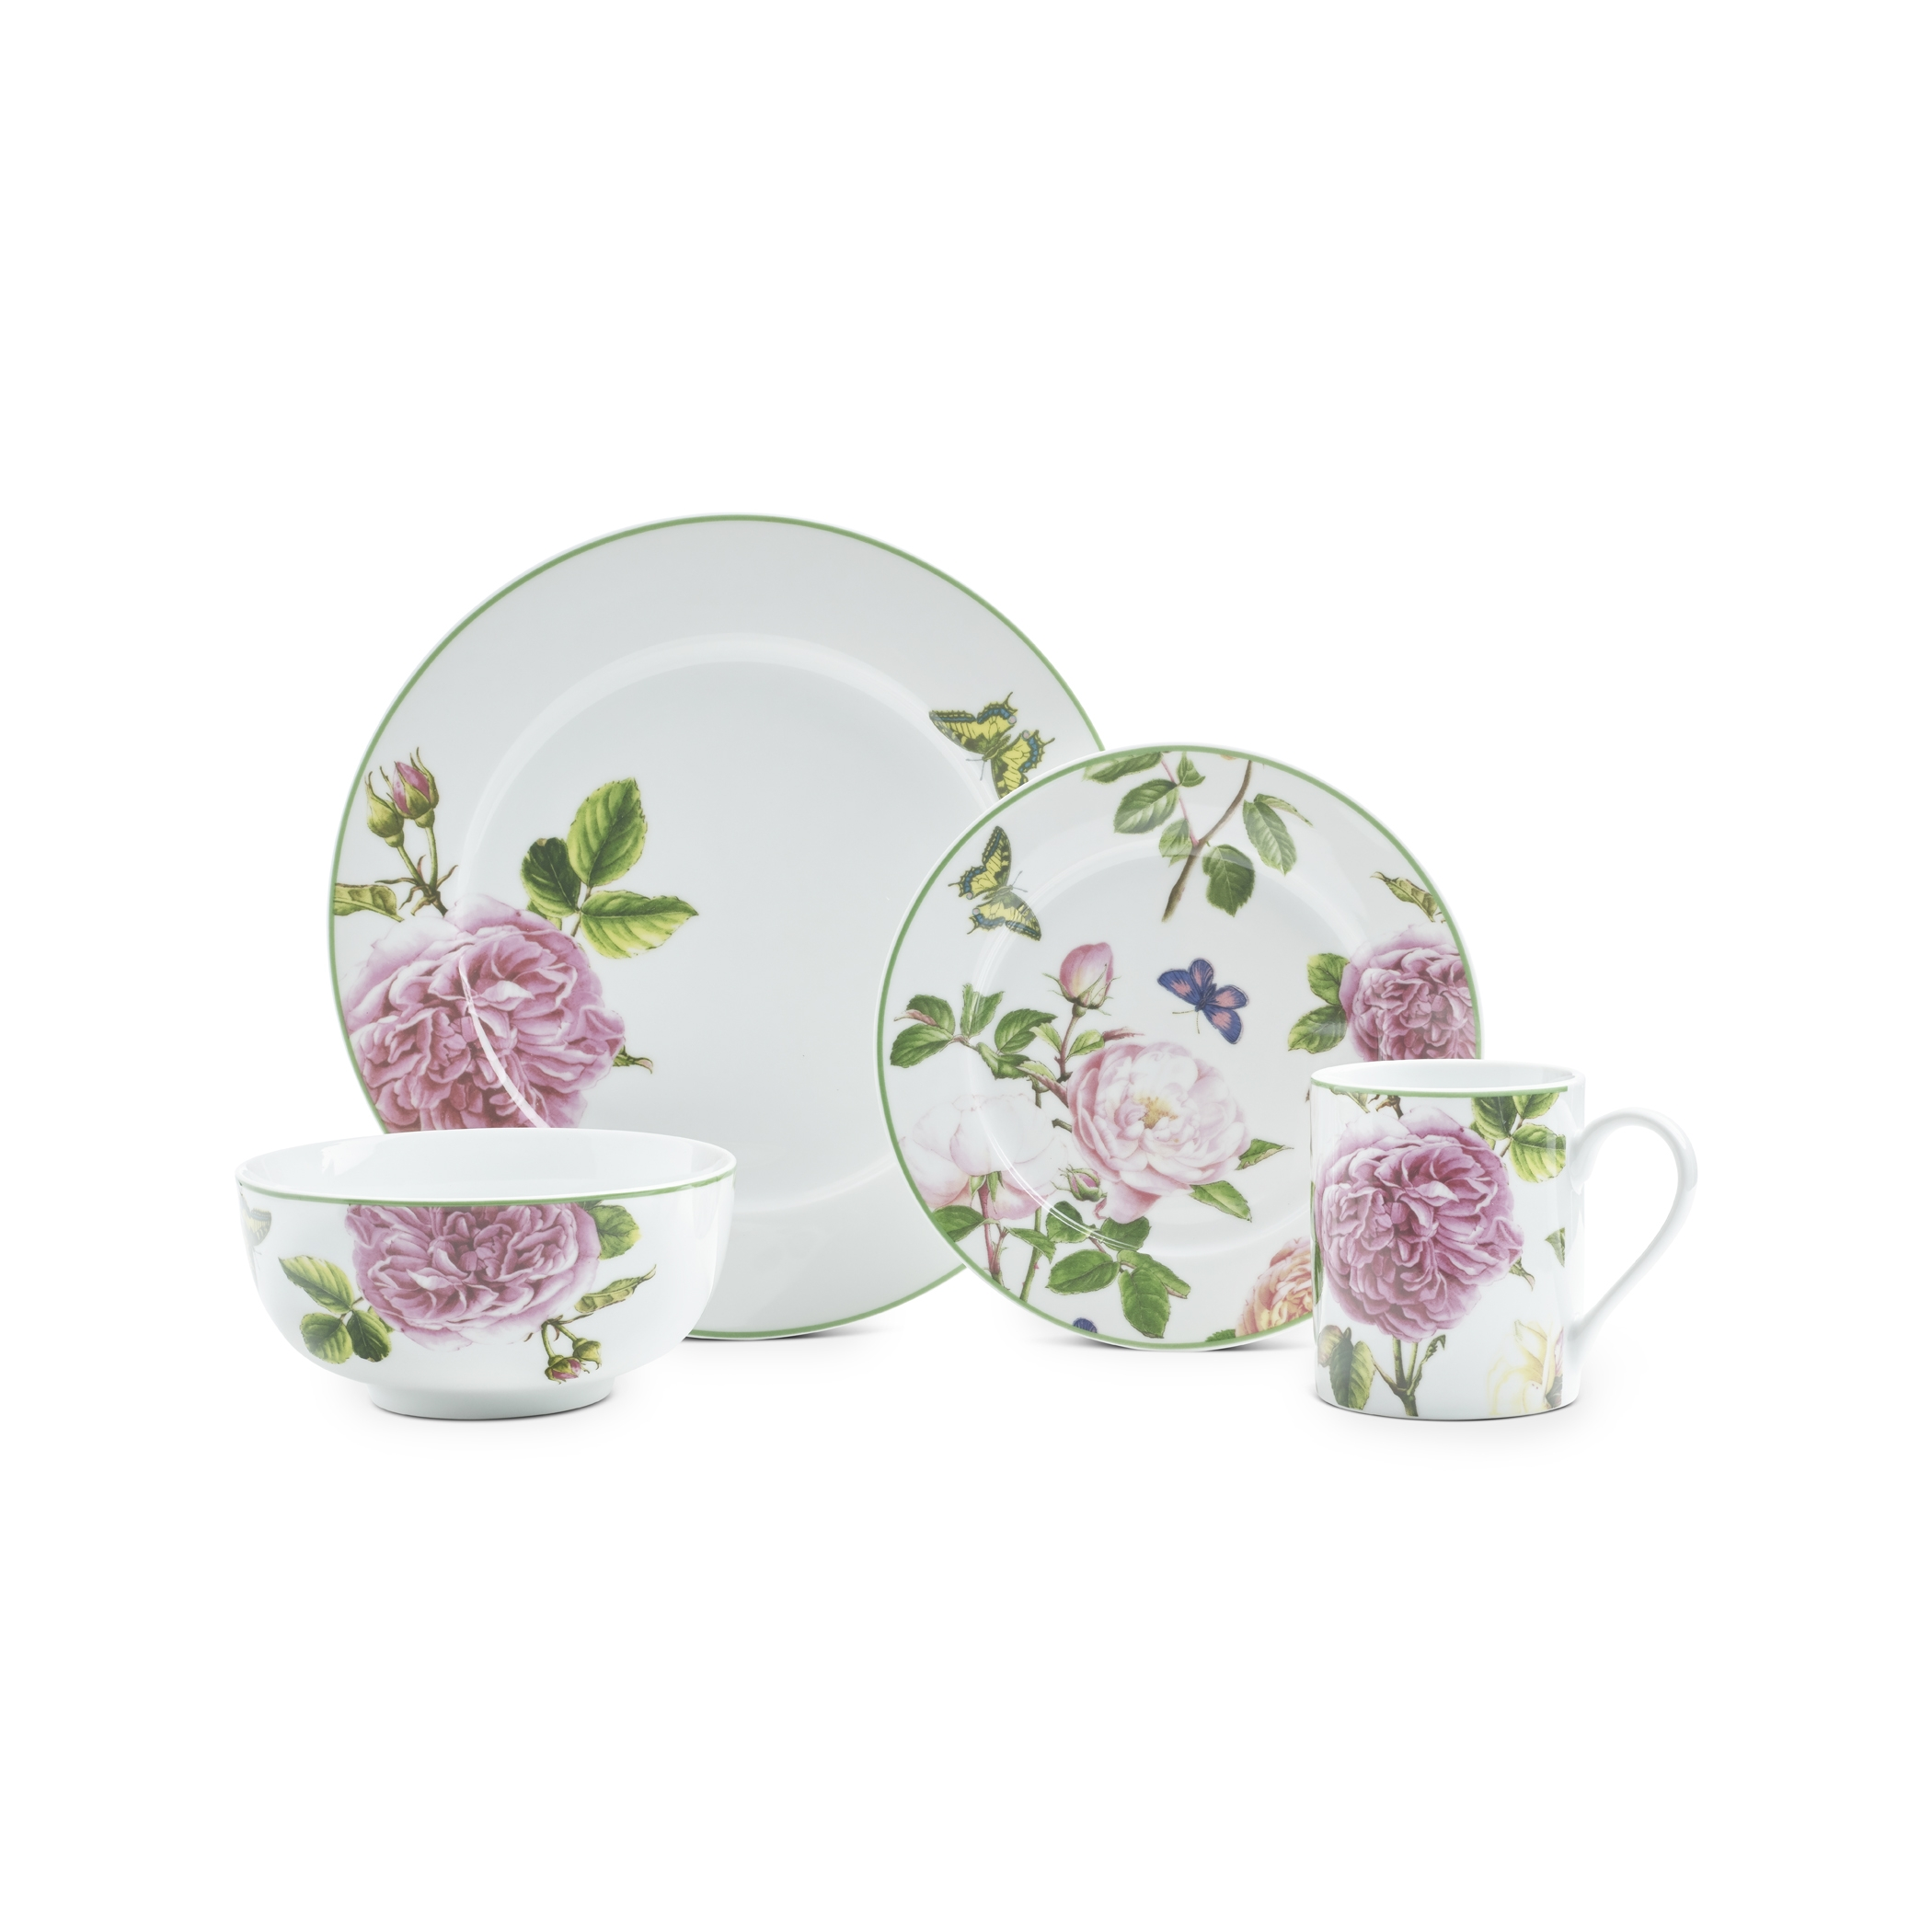 Spode Home Roses 16-piece Set image number 0